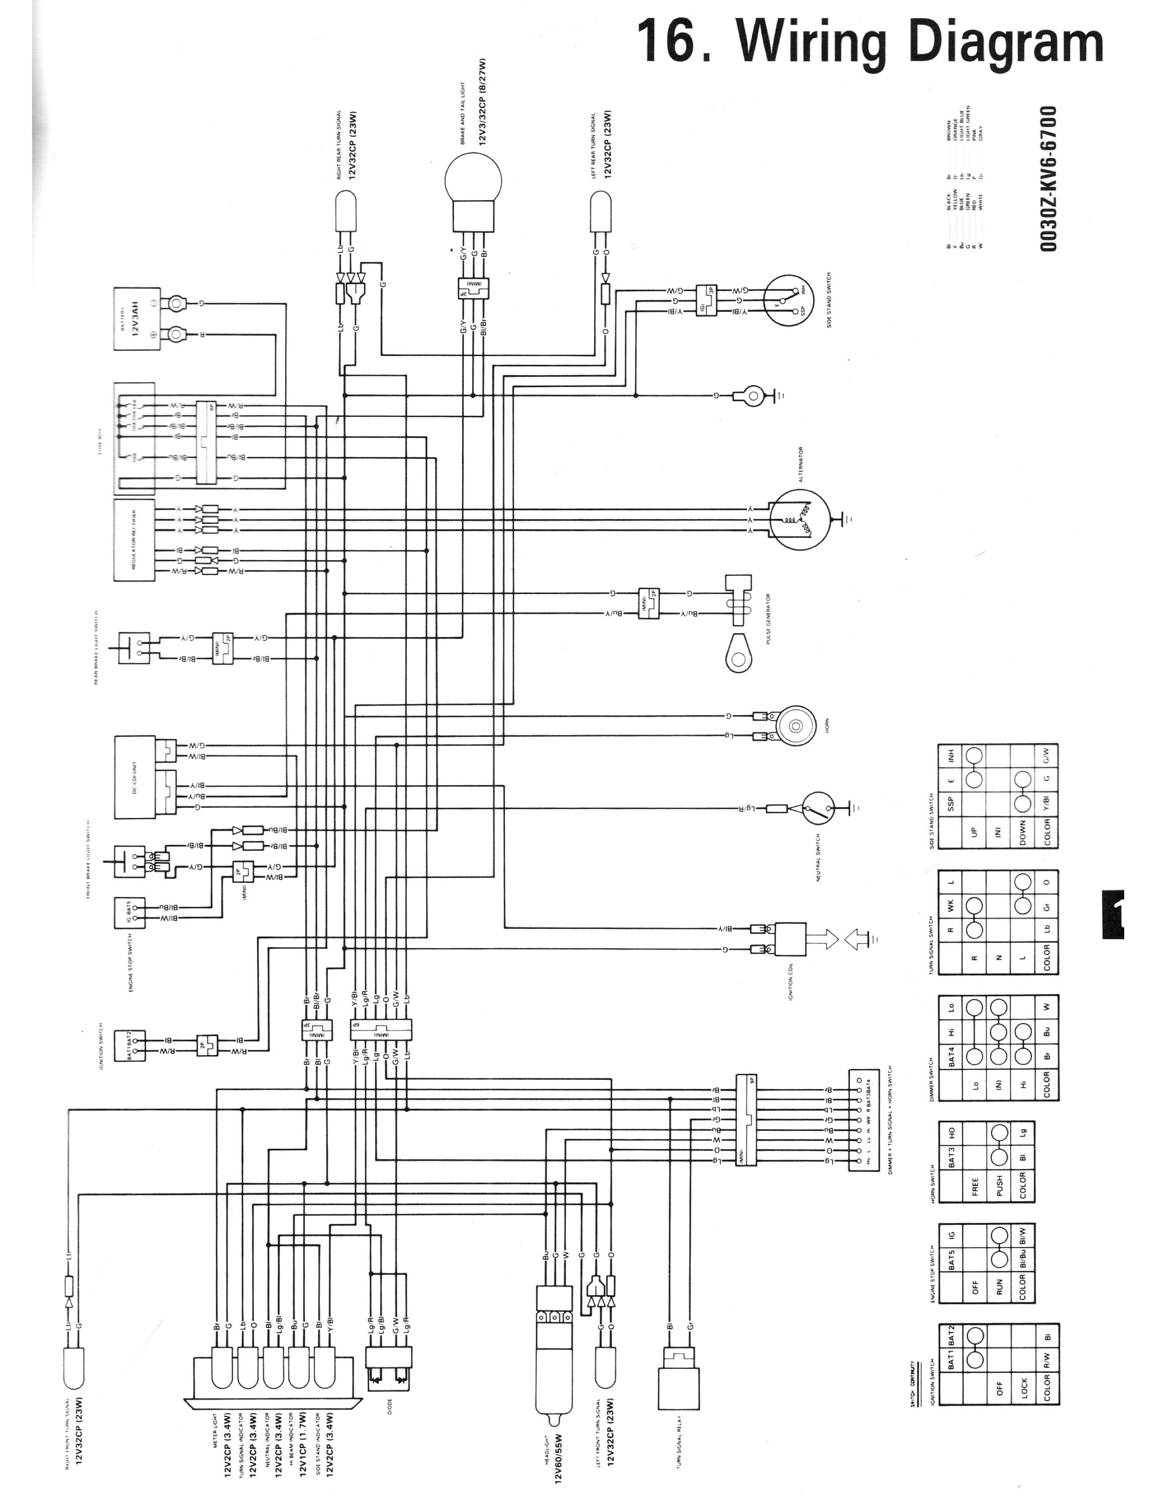 Baja Wilderness Trail 90 Wiring Diagram